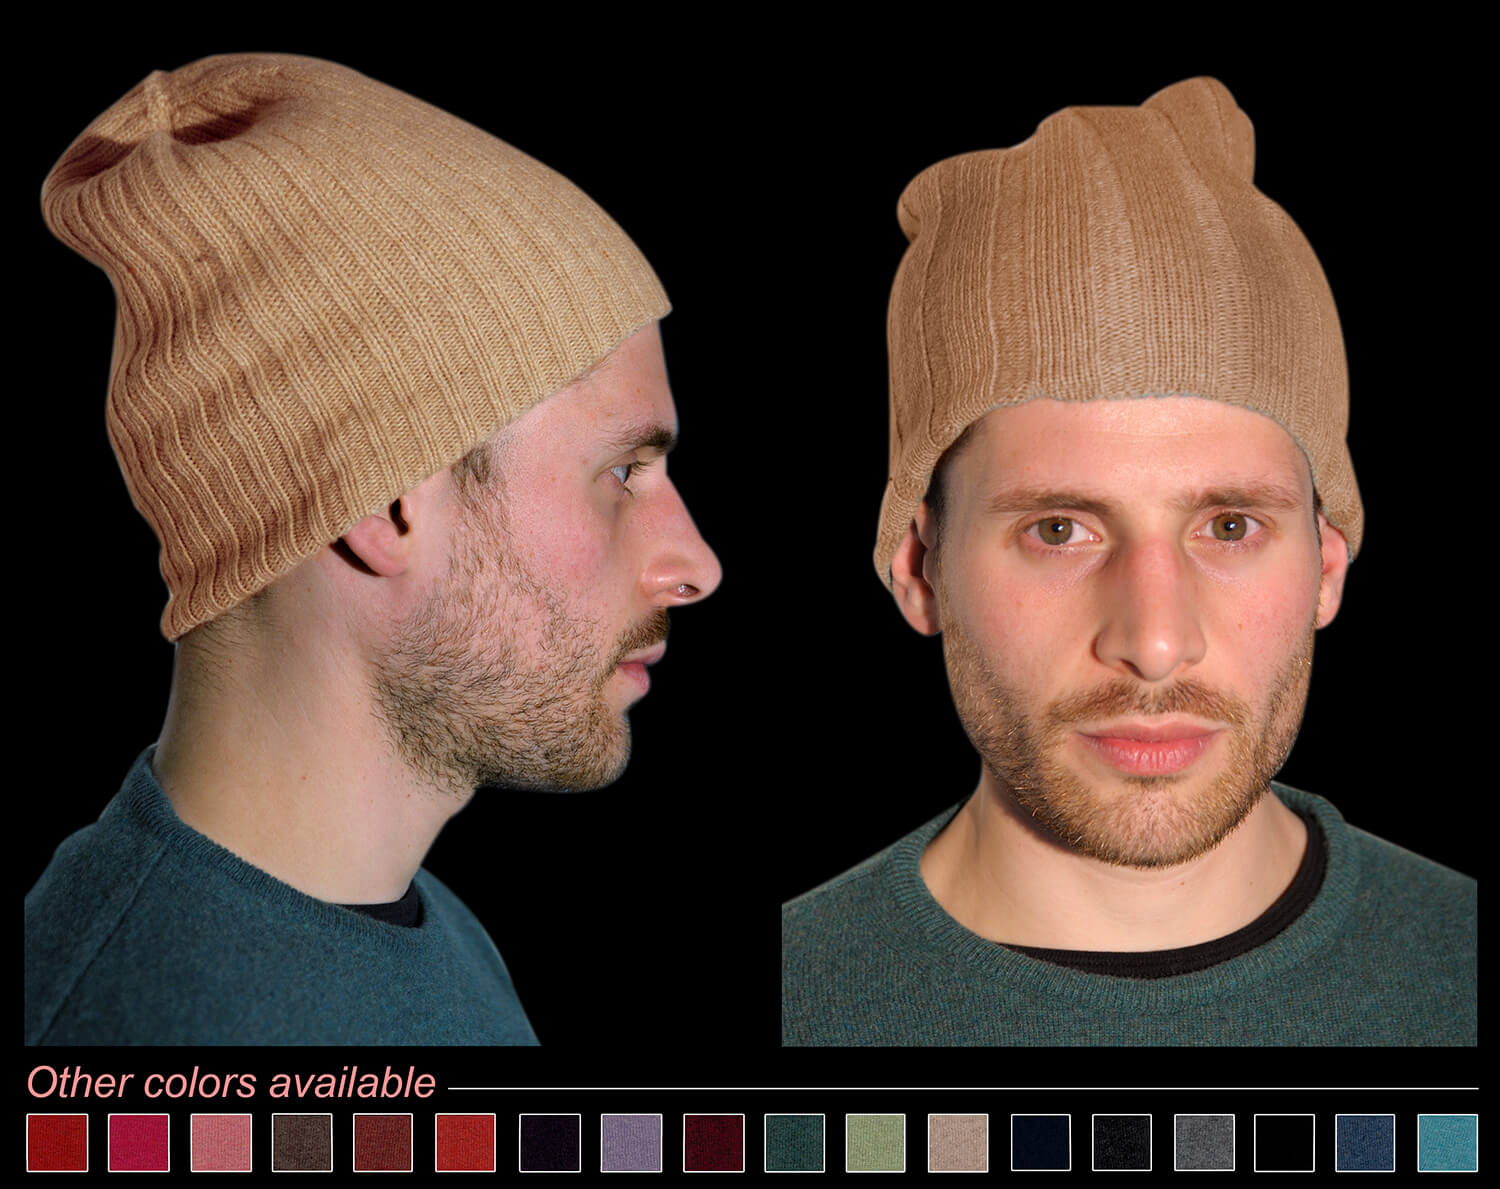 Man hat color beige code 119 and 298